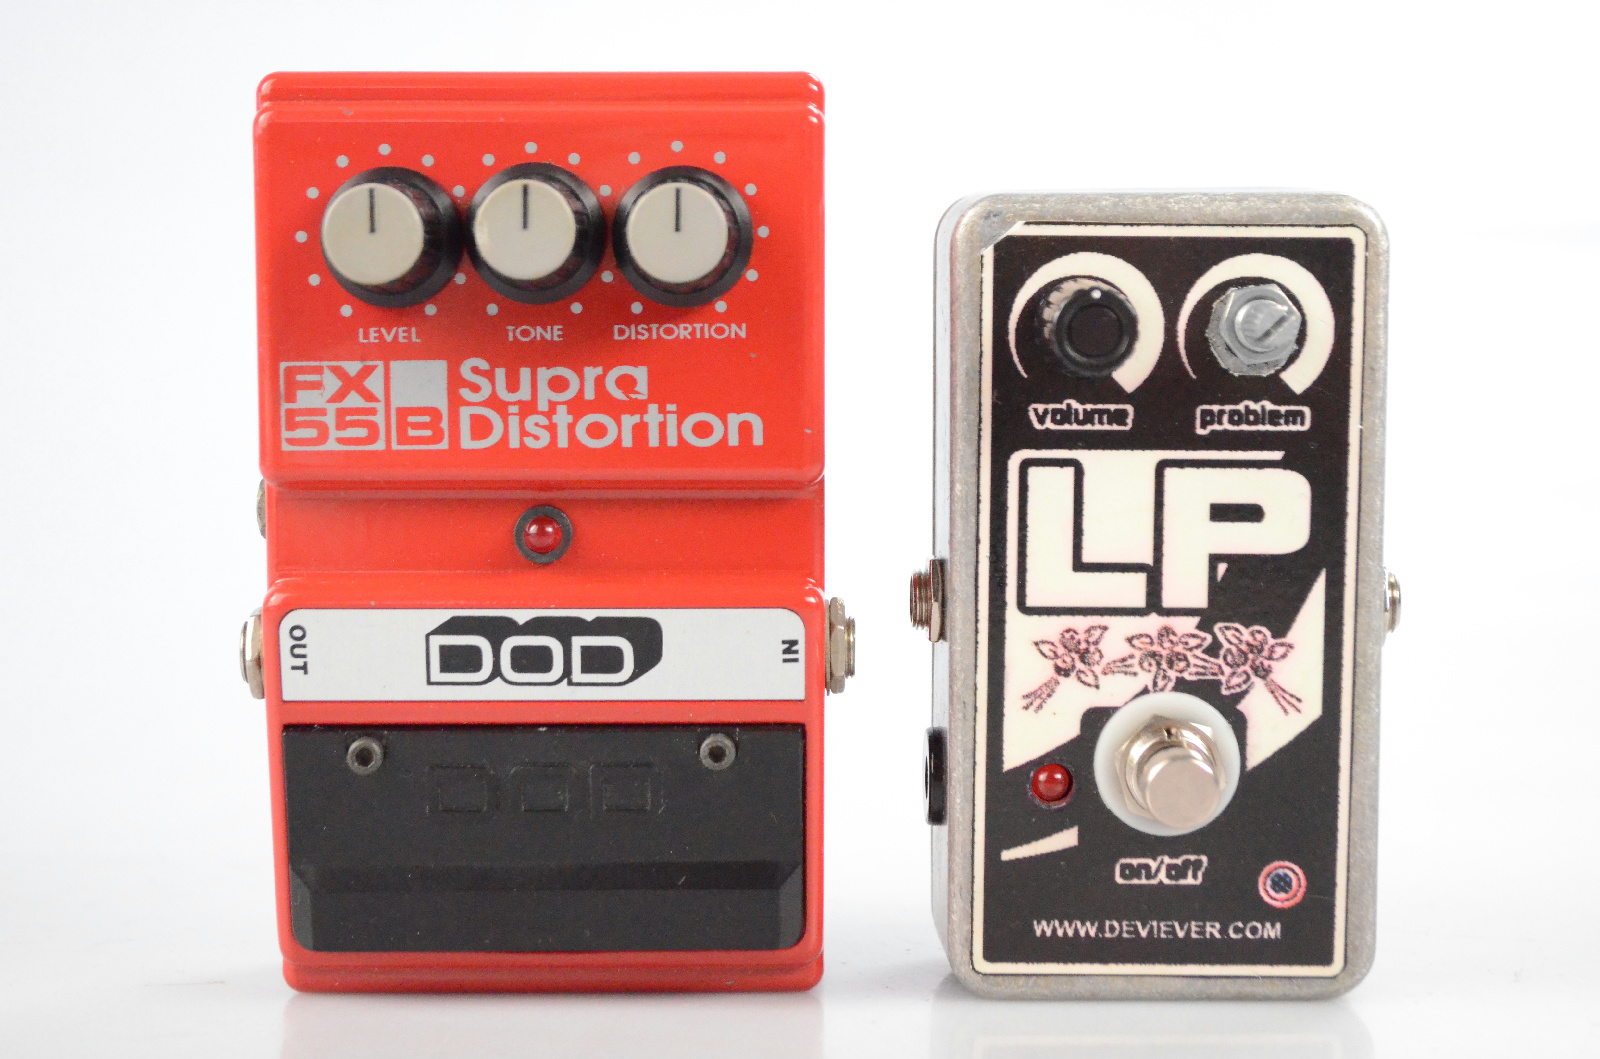 Devi Ever LP Pedal & DOD FX 55B Supra Distortion Owned by Page Hamilton #32575